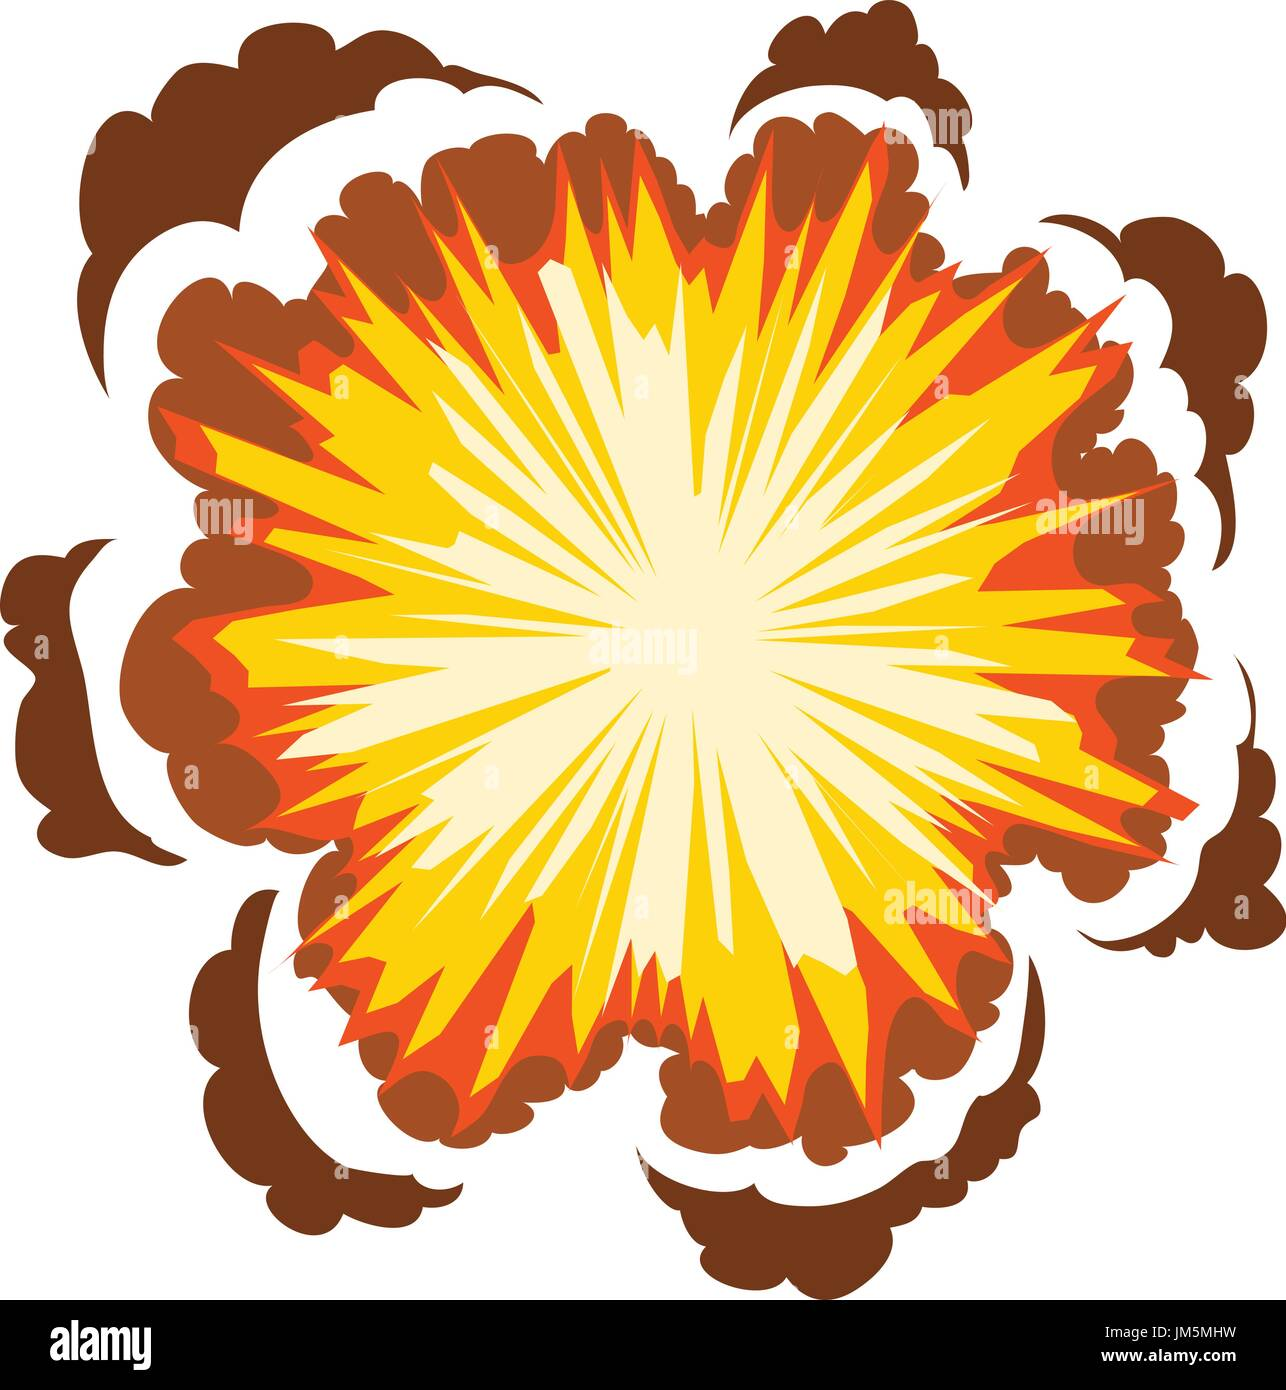 Ground Explosion Stock Photos Amp Ground Explosion Stock